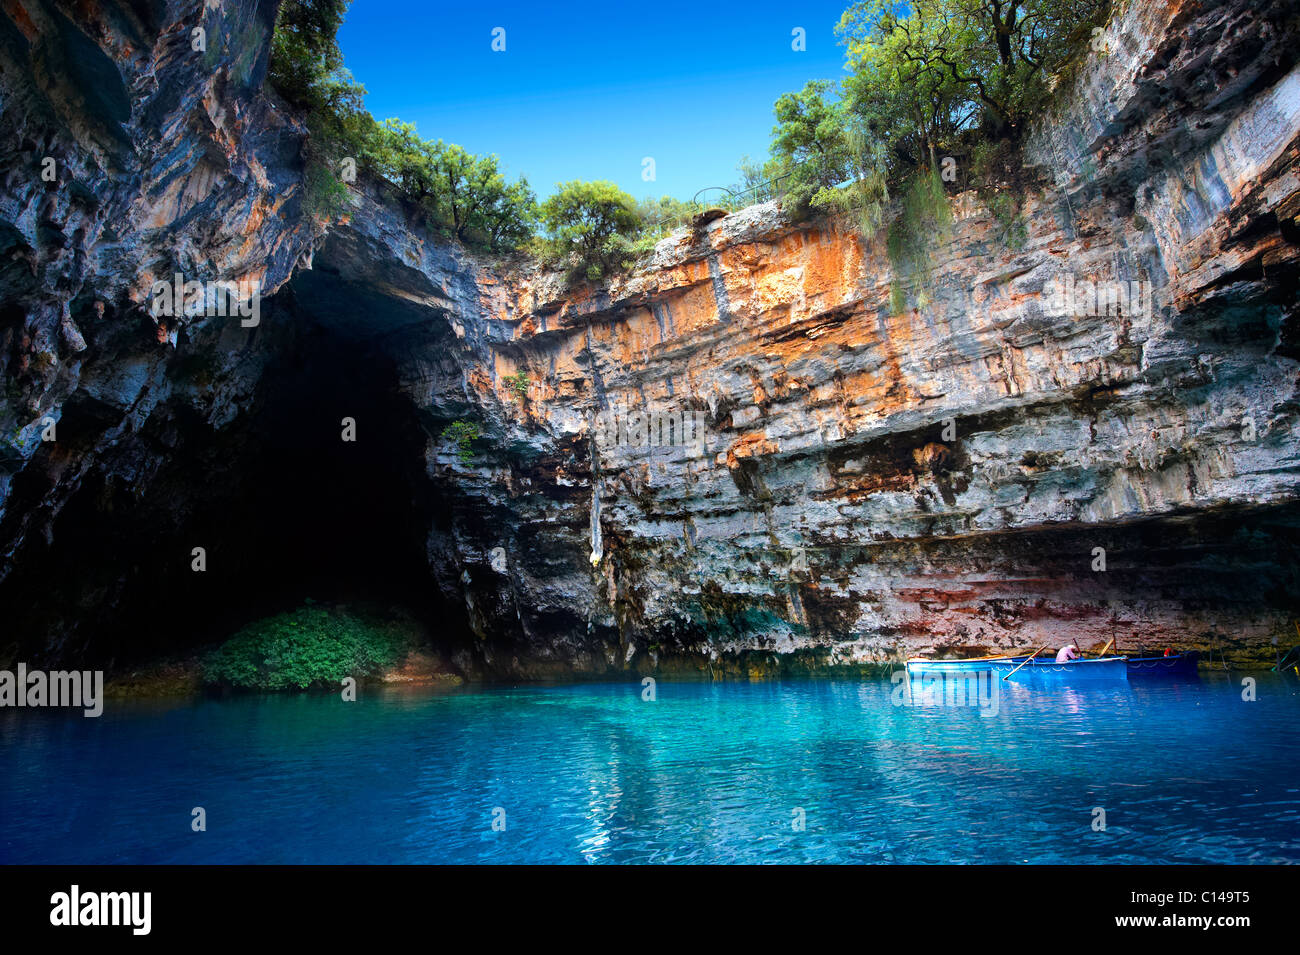 The Lake Melissani. inland cave with sea water, Kefalonia, Ionian Islands, Greece. - Stock Image